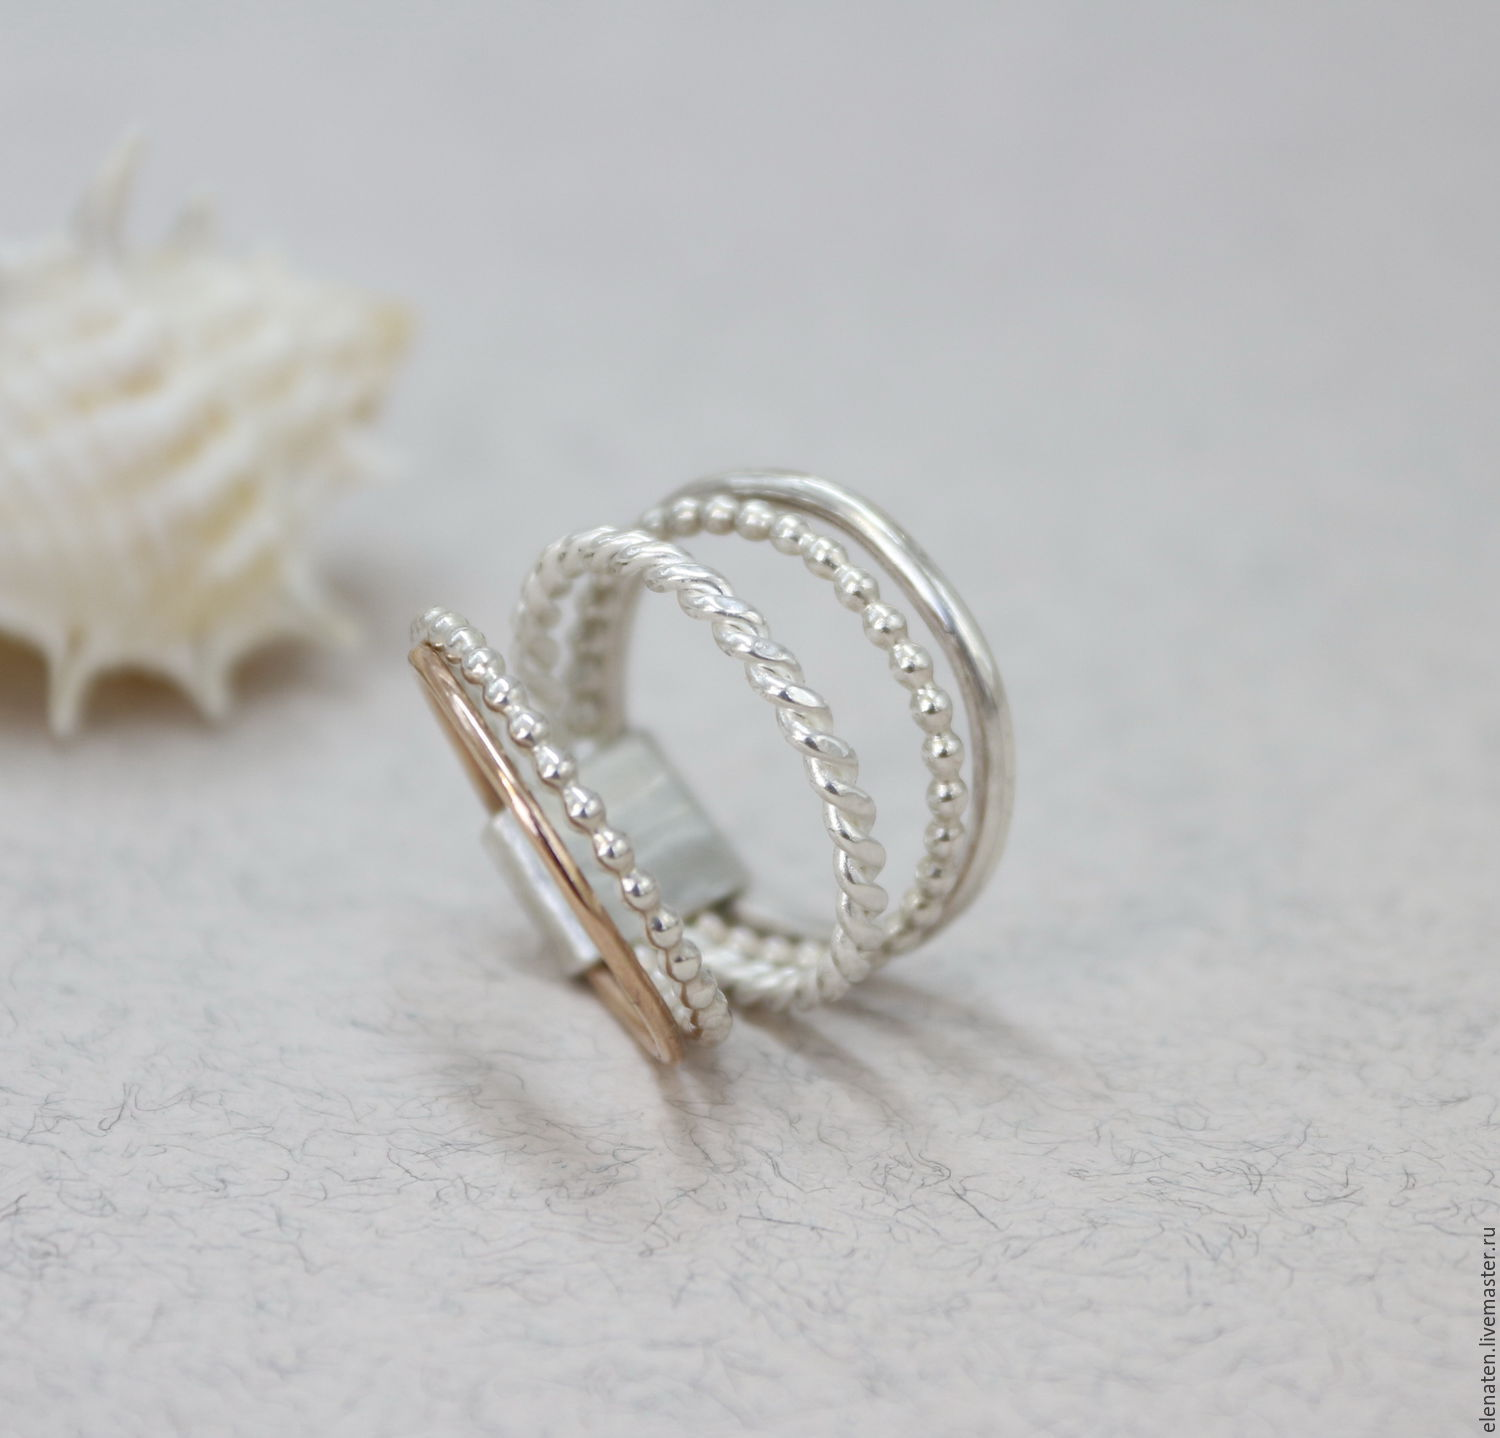 jewelry sterling silver stacking item online buy on rings twisted livemaster handmade shop